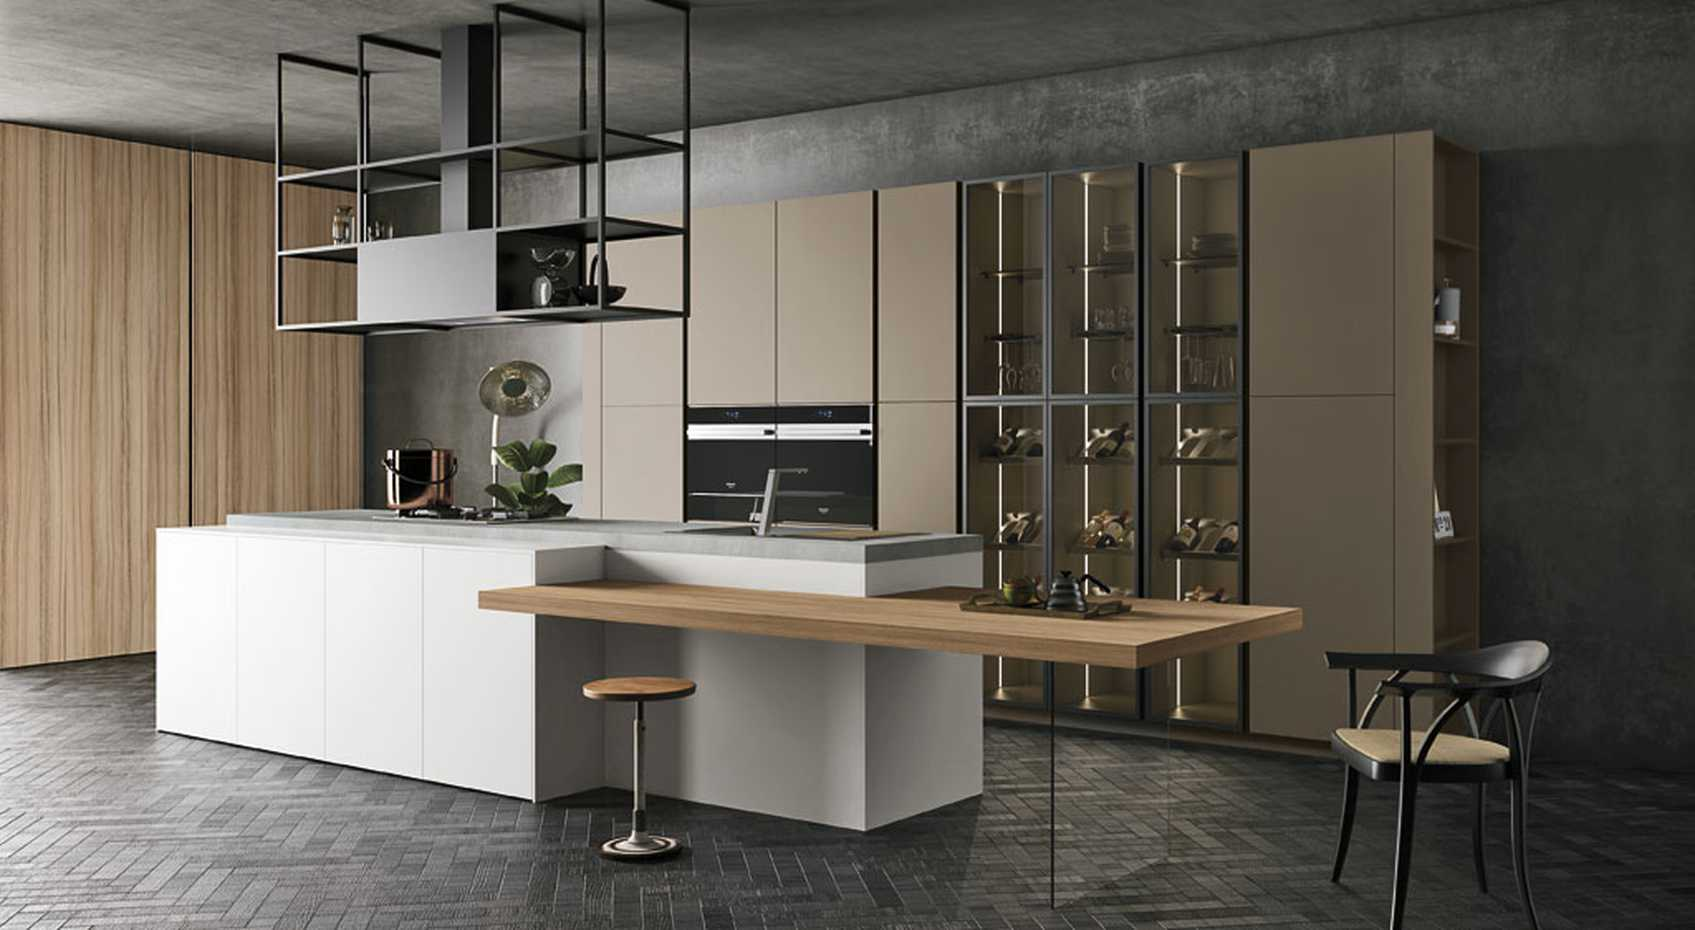 Style by Doimo Cucine product image 4